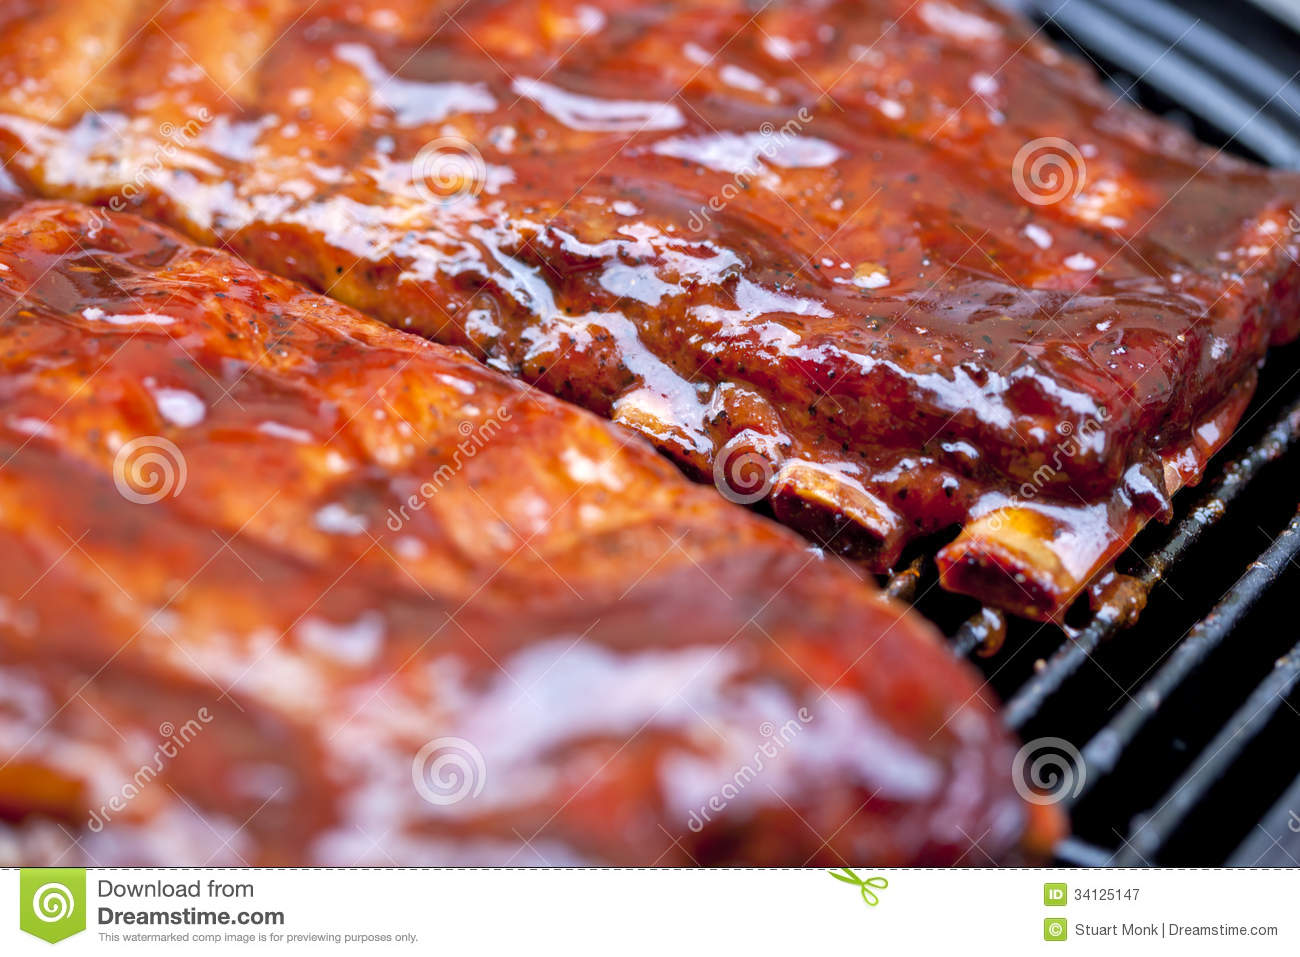 bbq-ribs-st-louis-style-glazed-sauce-341